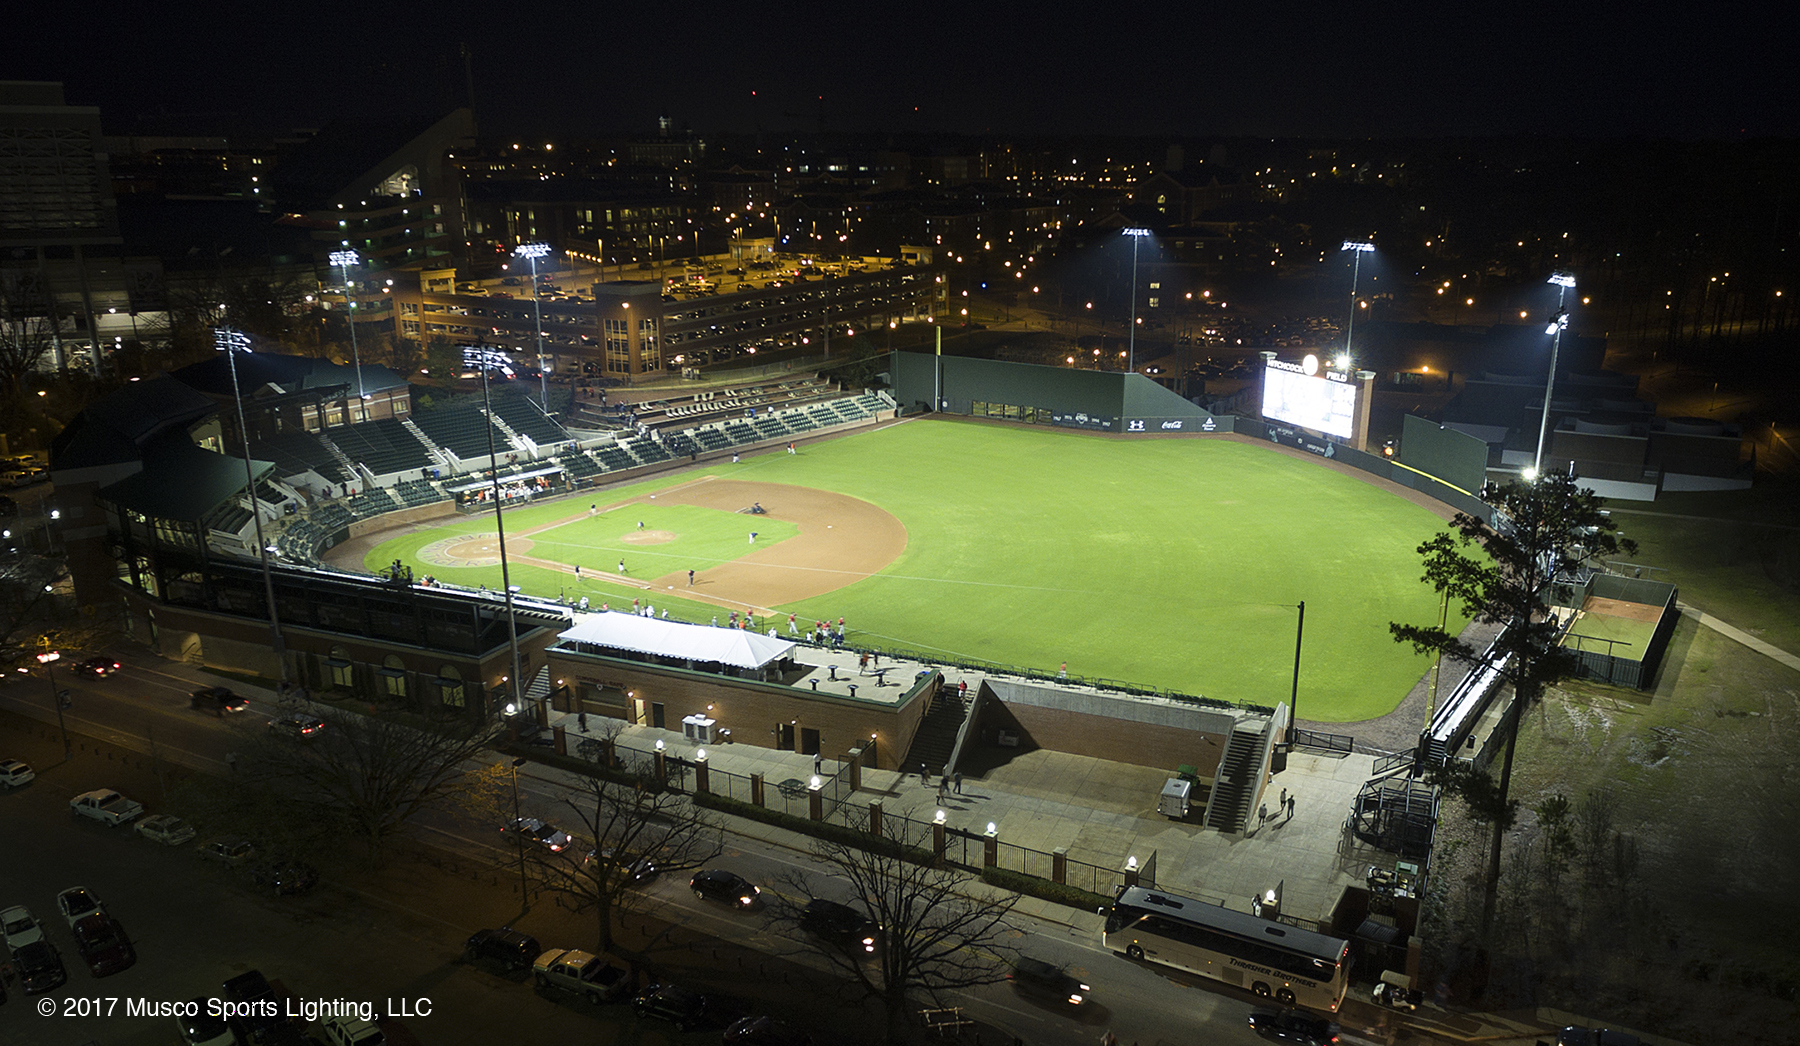 Musco's Total Light Control—TLC for LED™ technology improves energy efficiency and player visibility, backed by a 25-year warranty. (Photo: Musco Lighting)